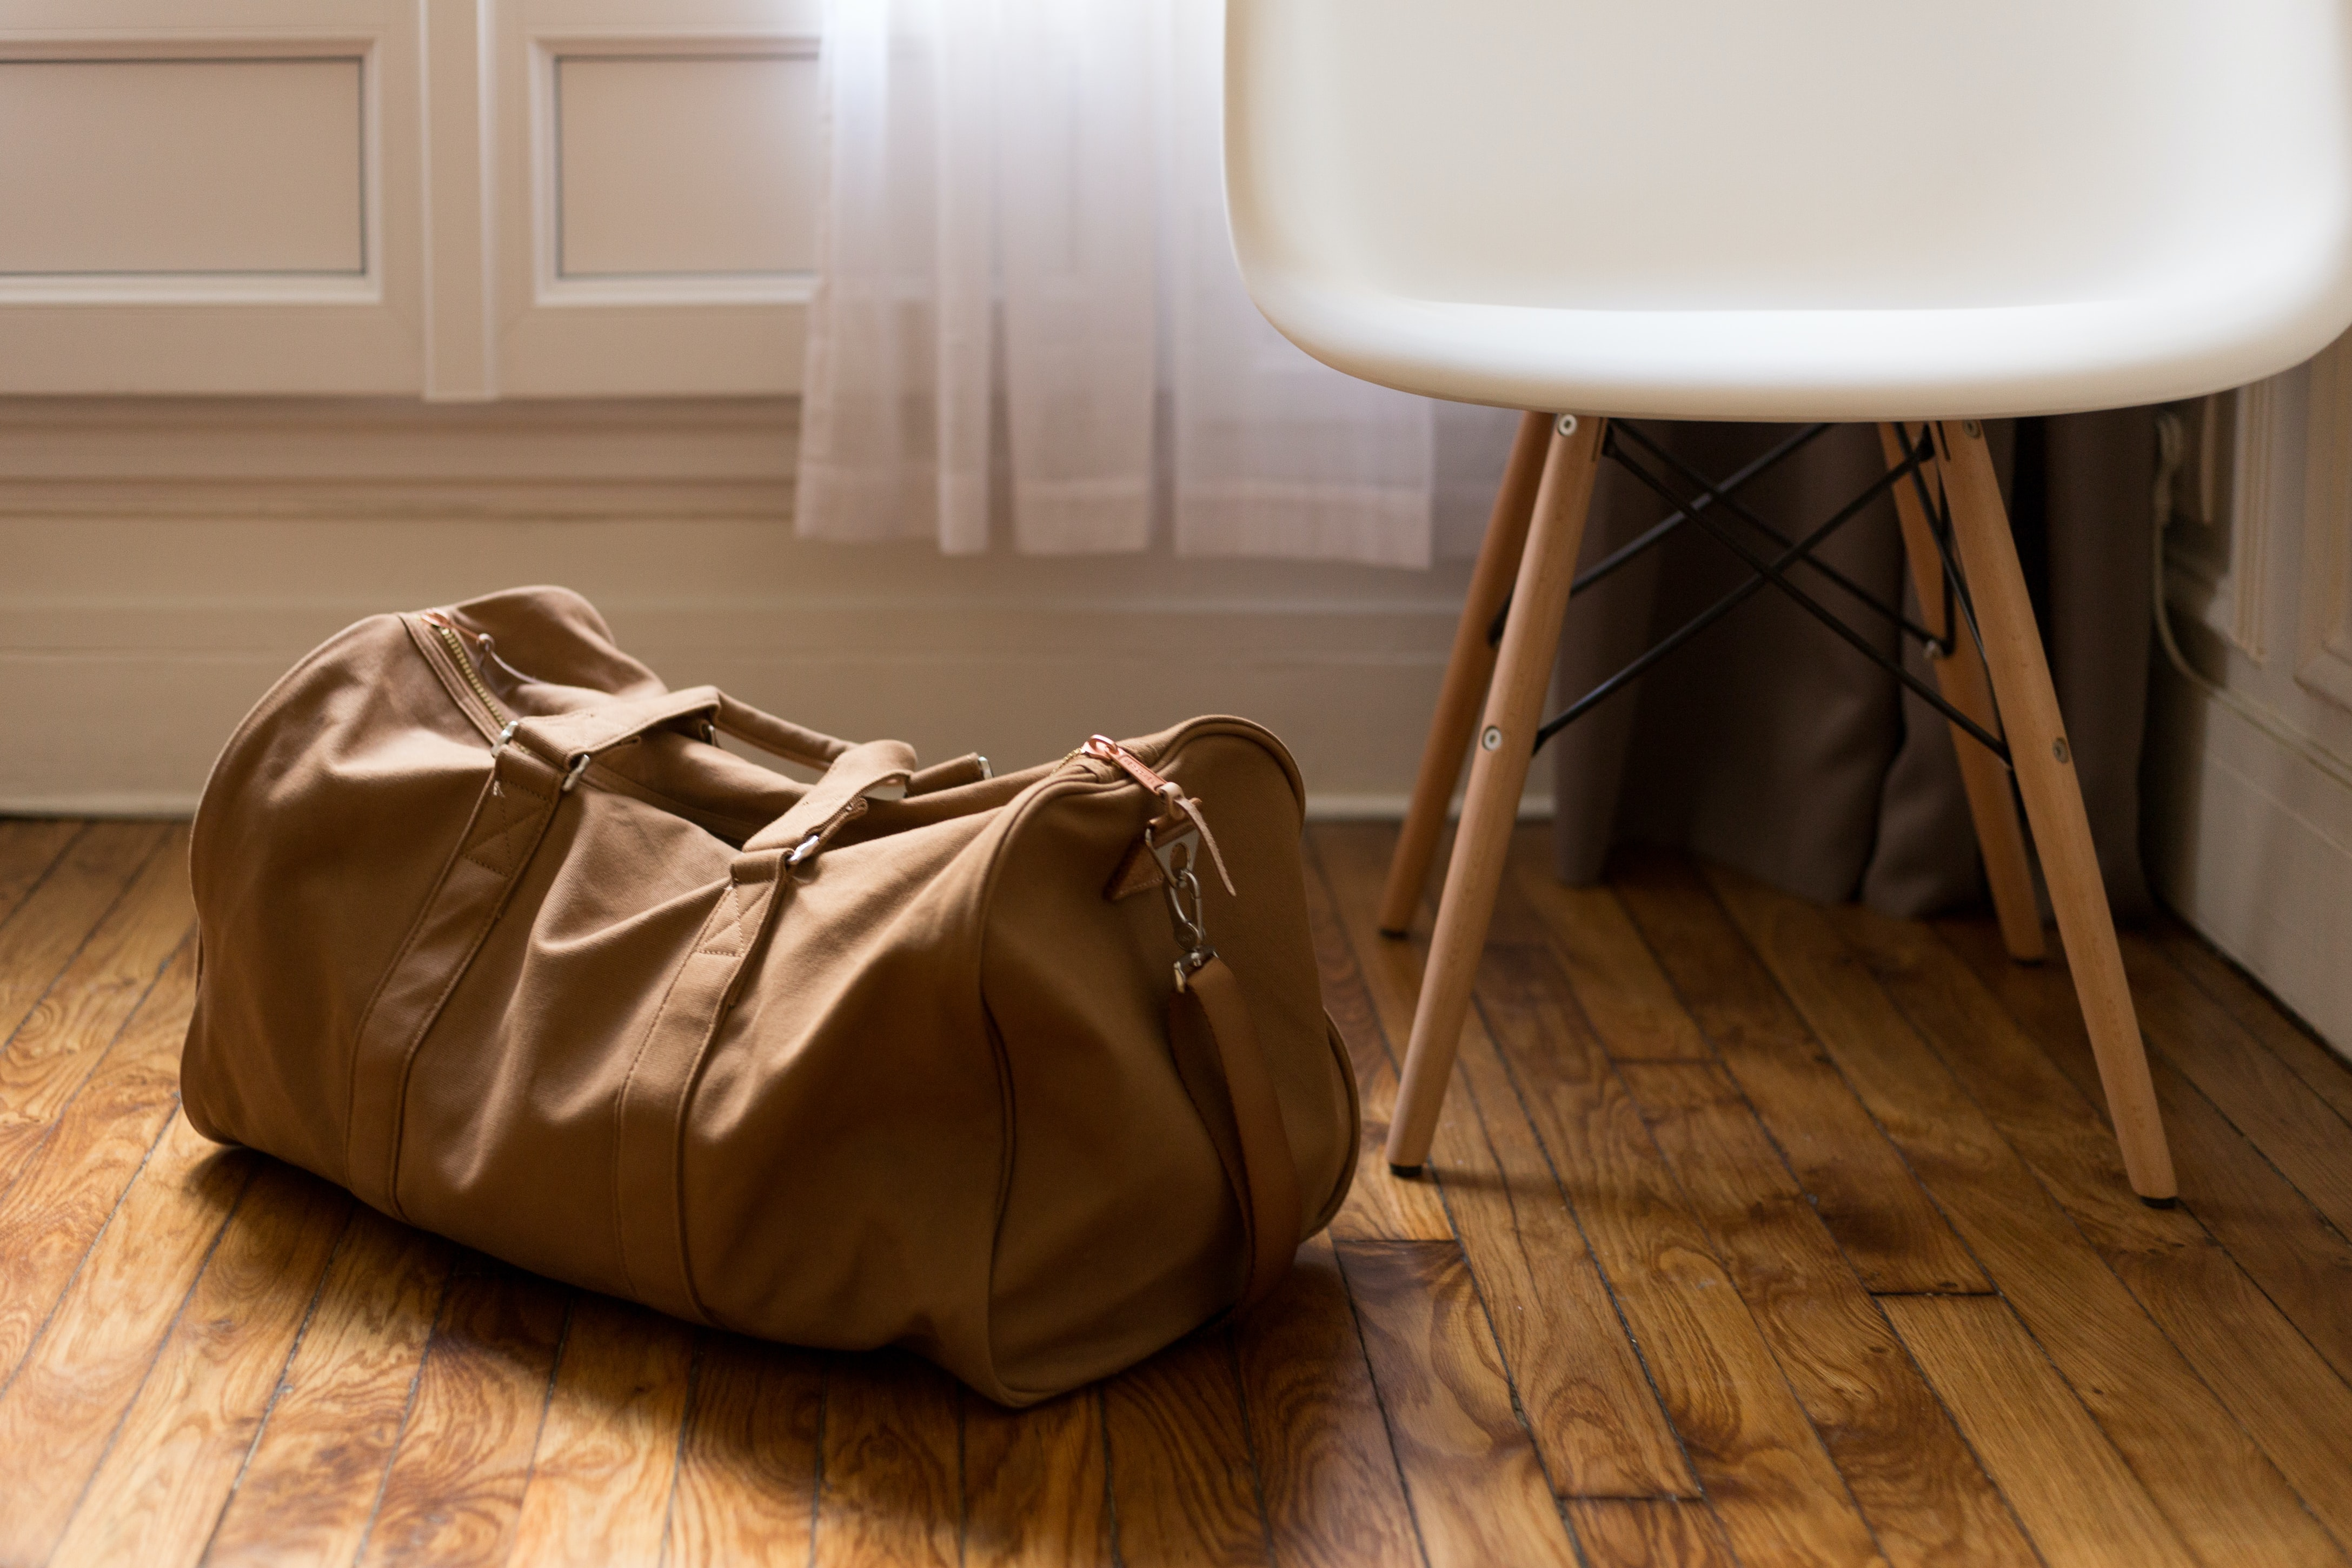 Unsplash image of a duffel bag on the ground